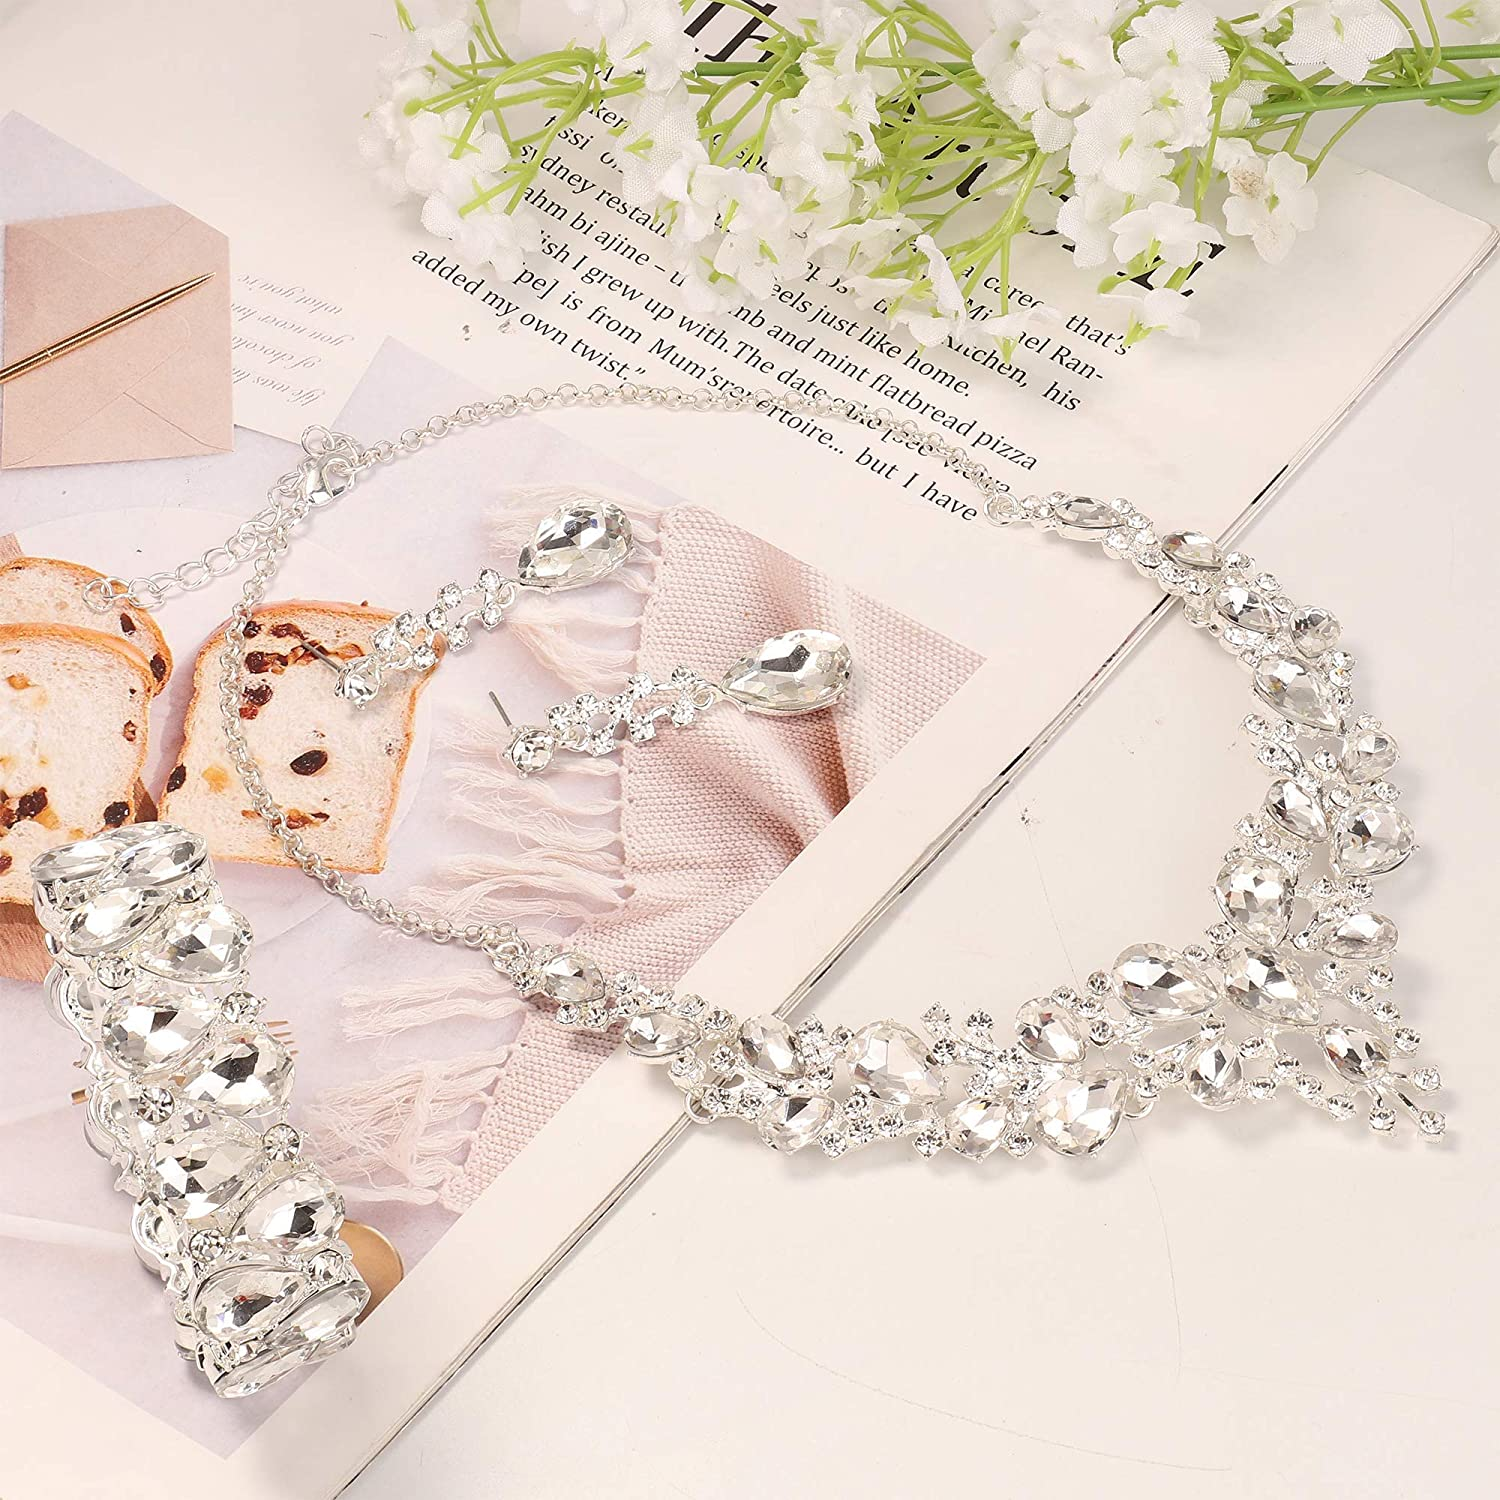 Subiceto Crystal Bridal Jewelry Sets for Women Necklace Earrings Bracelet Set for Wedding Rhinestone Bridesmaid Gifts fit with Wedding Dress